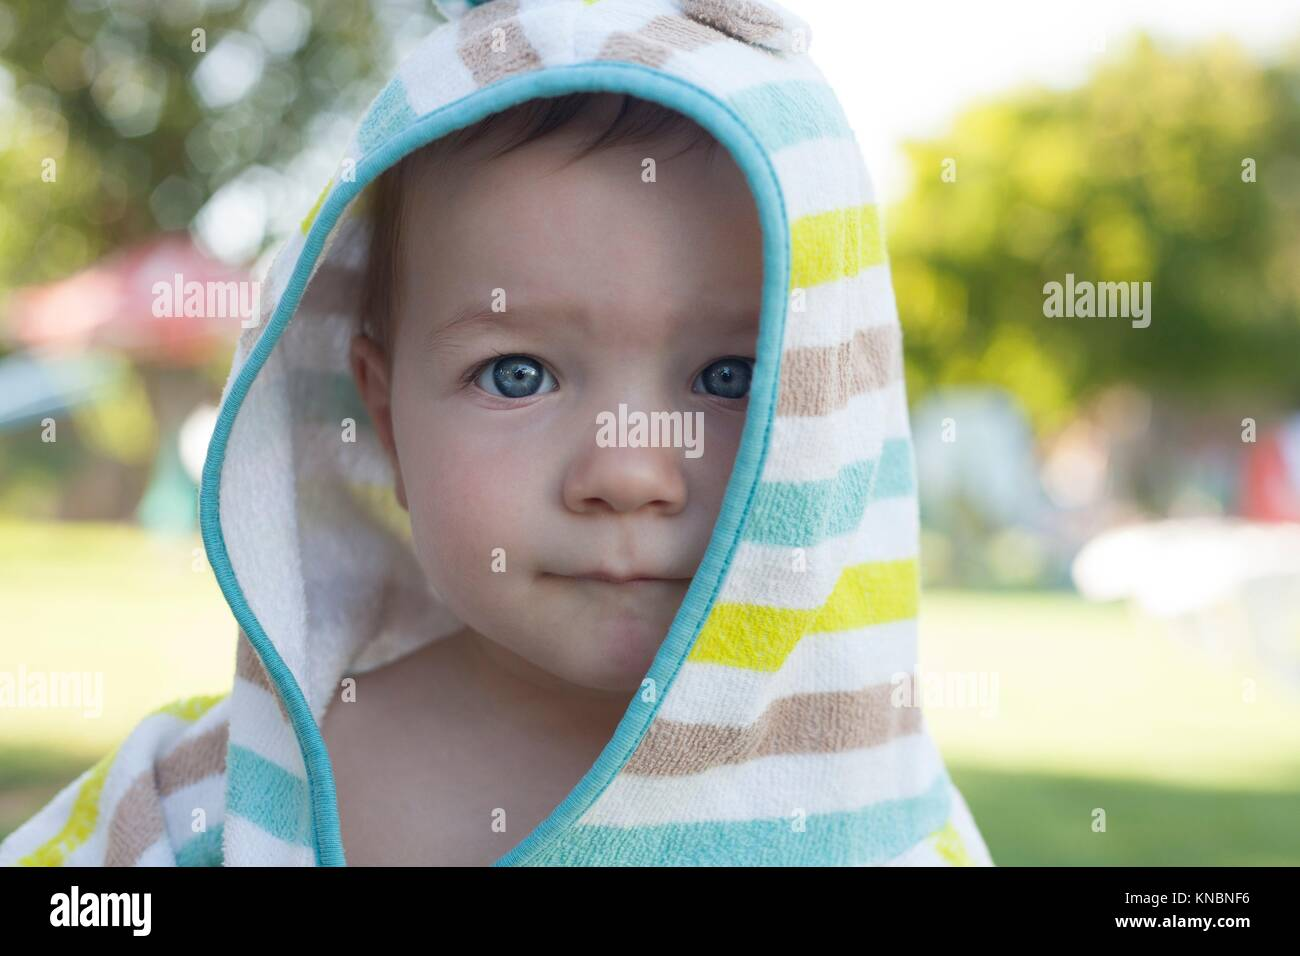 1 year baby boy with hooded poncho towel after swimming. Portrait. - Stock Image